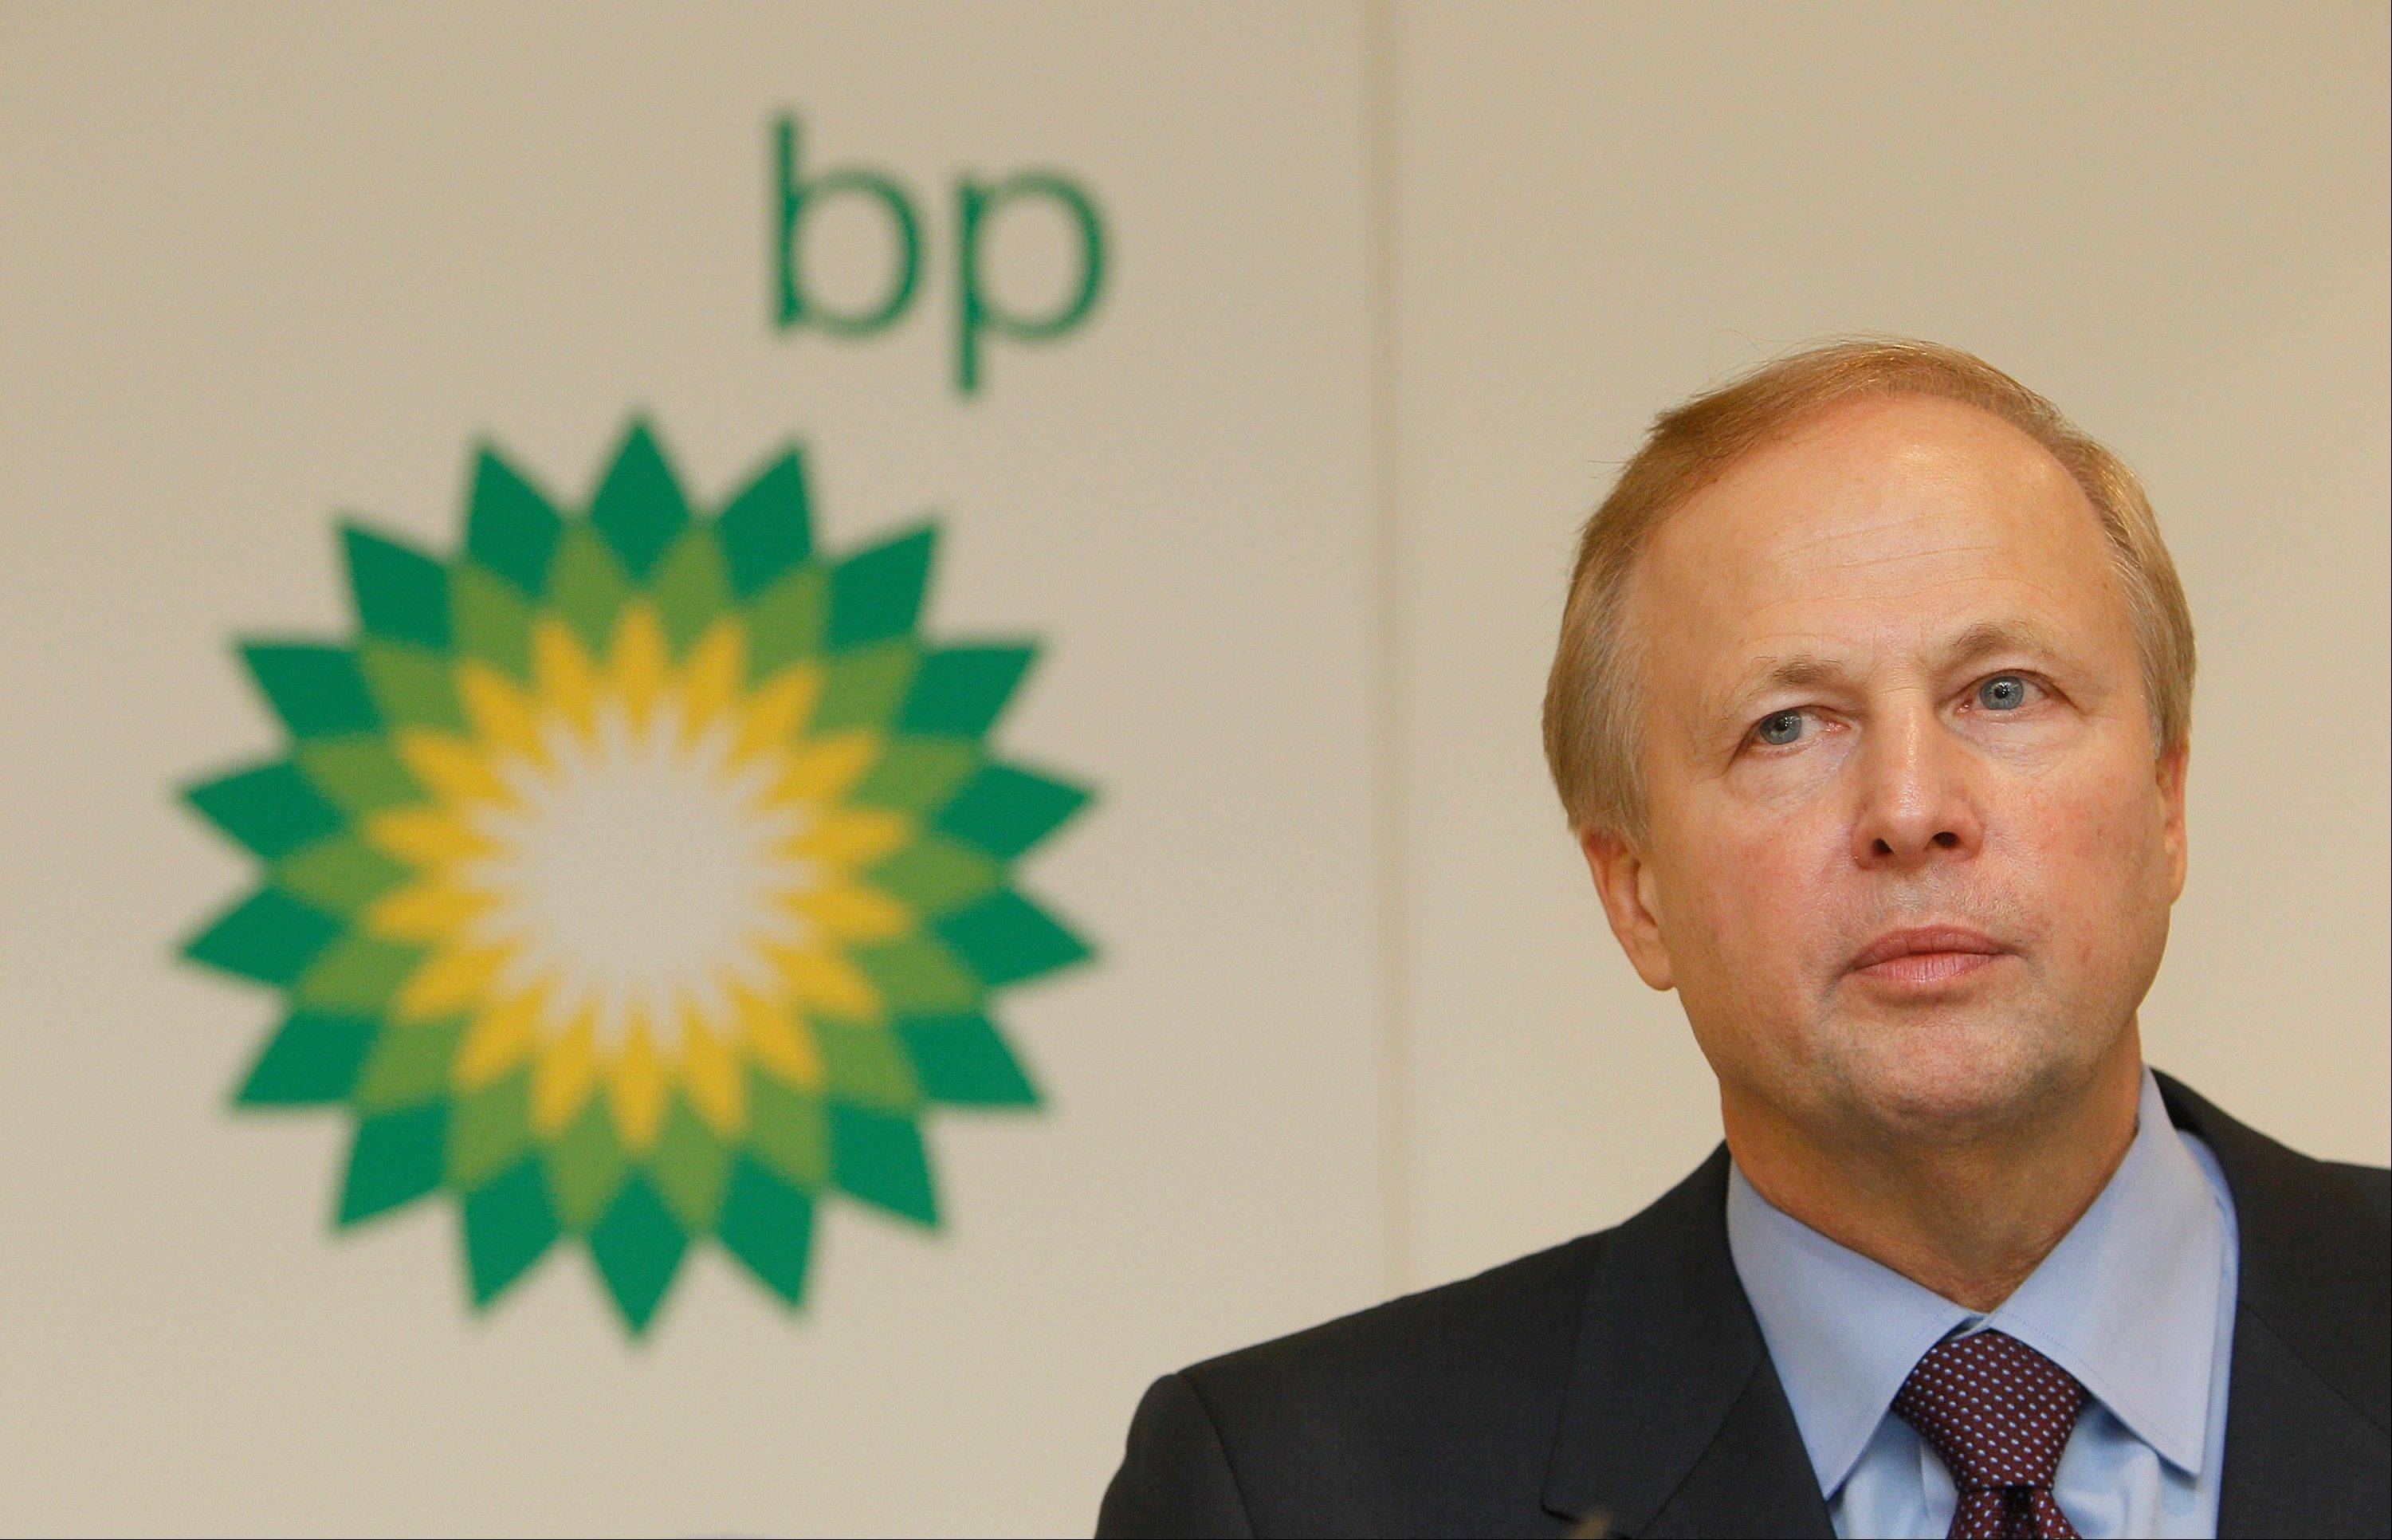 Under Bob Dudley, who became BP PLC�s CEO in October 2010, BP has been selling smaller assets while holding onto promising large resources it hopes to exploit with its expertise in developing large projects.